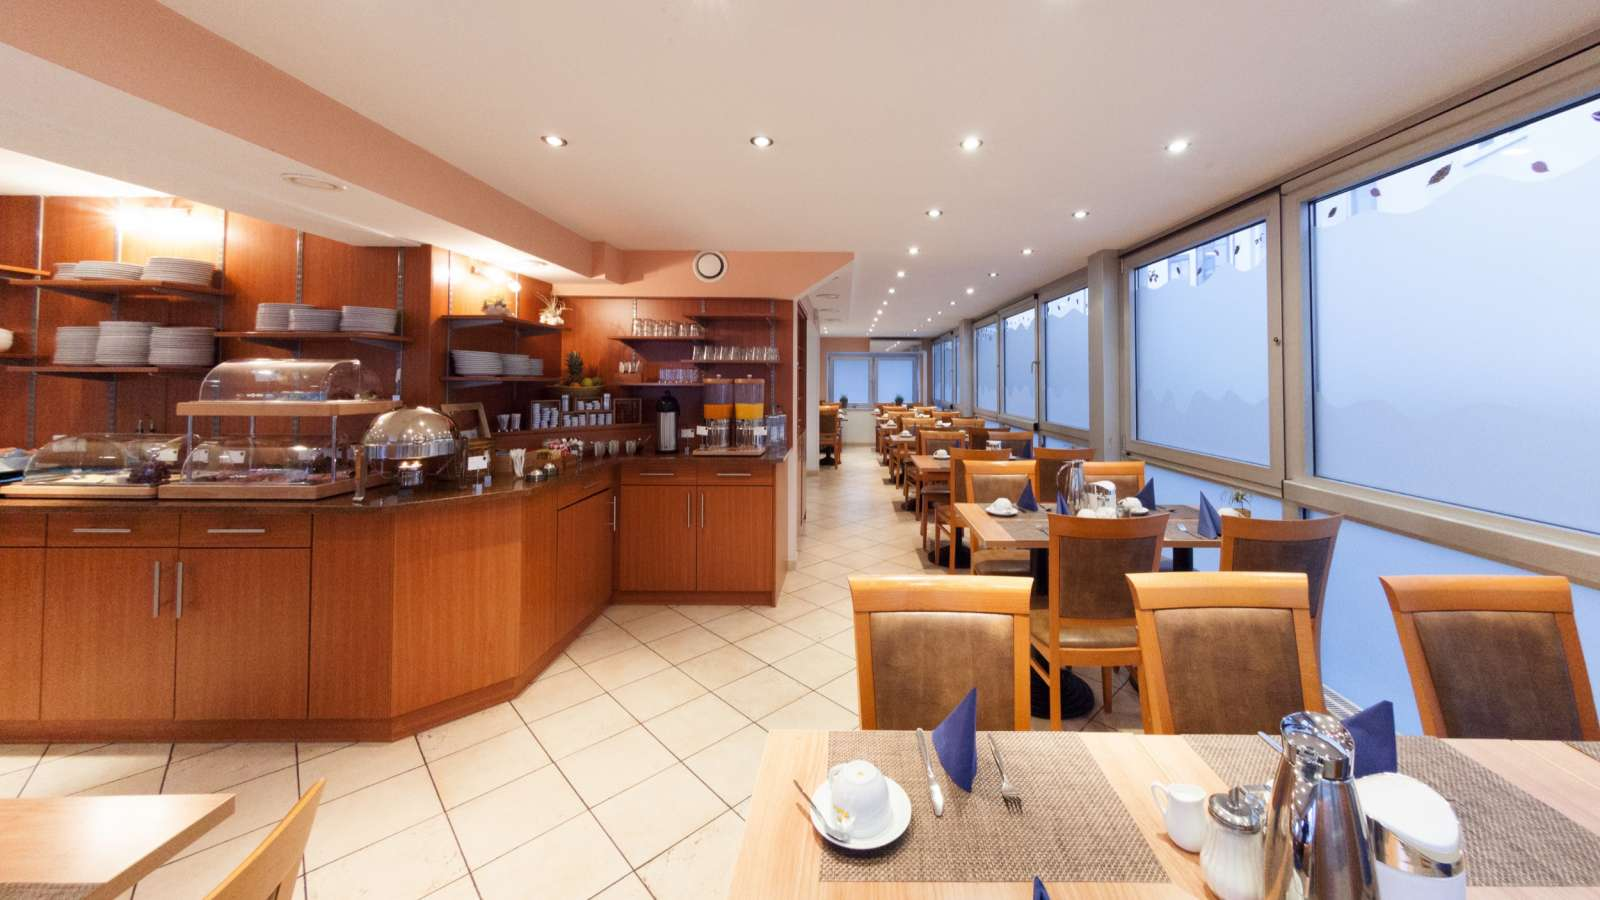 The breakfast room of Centro Hotel Mondial in Munich